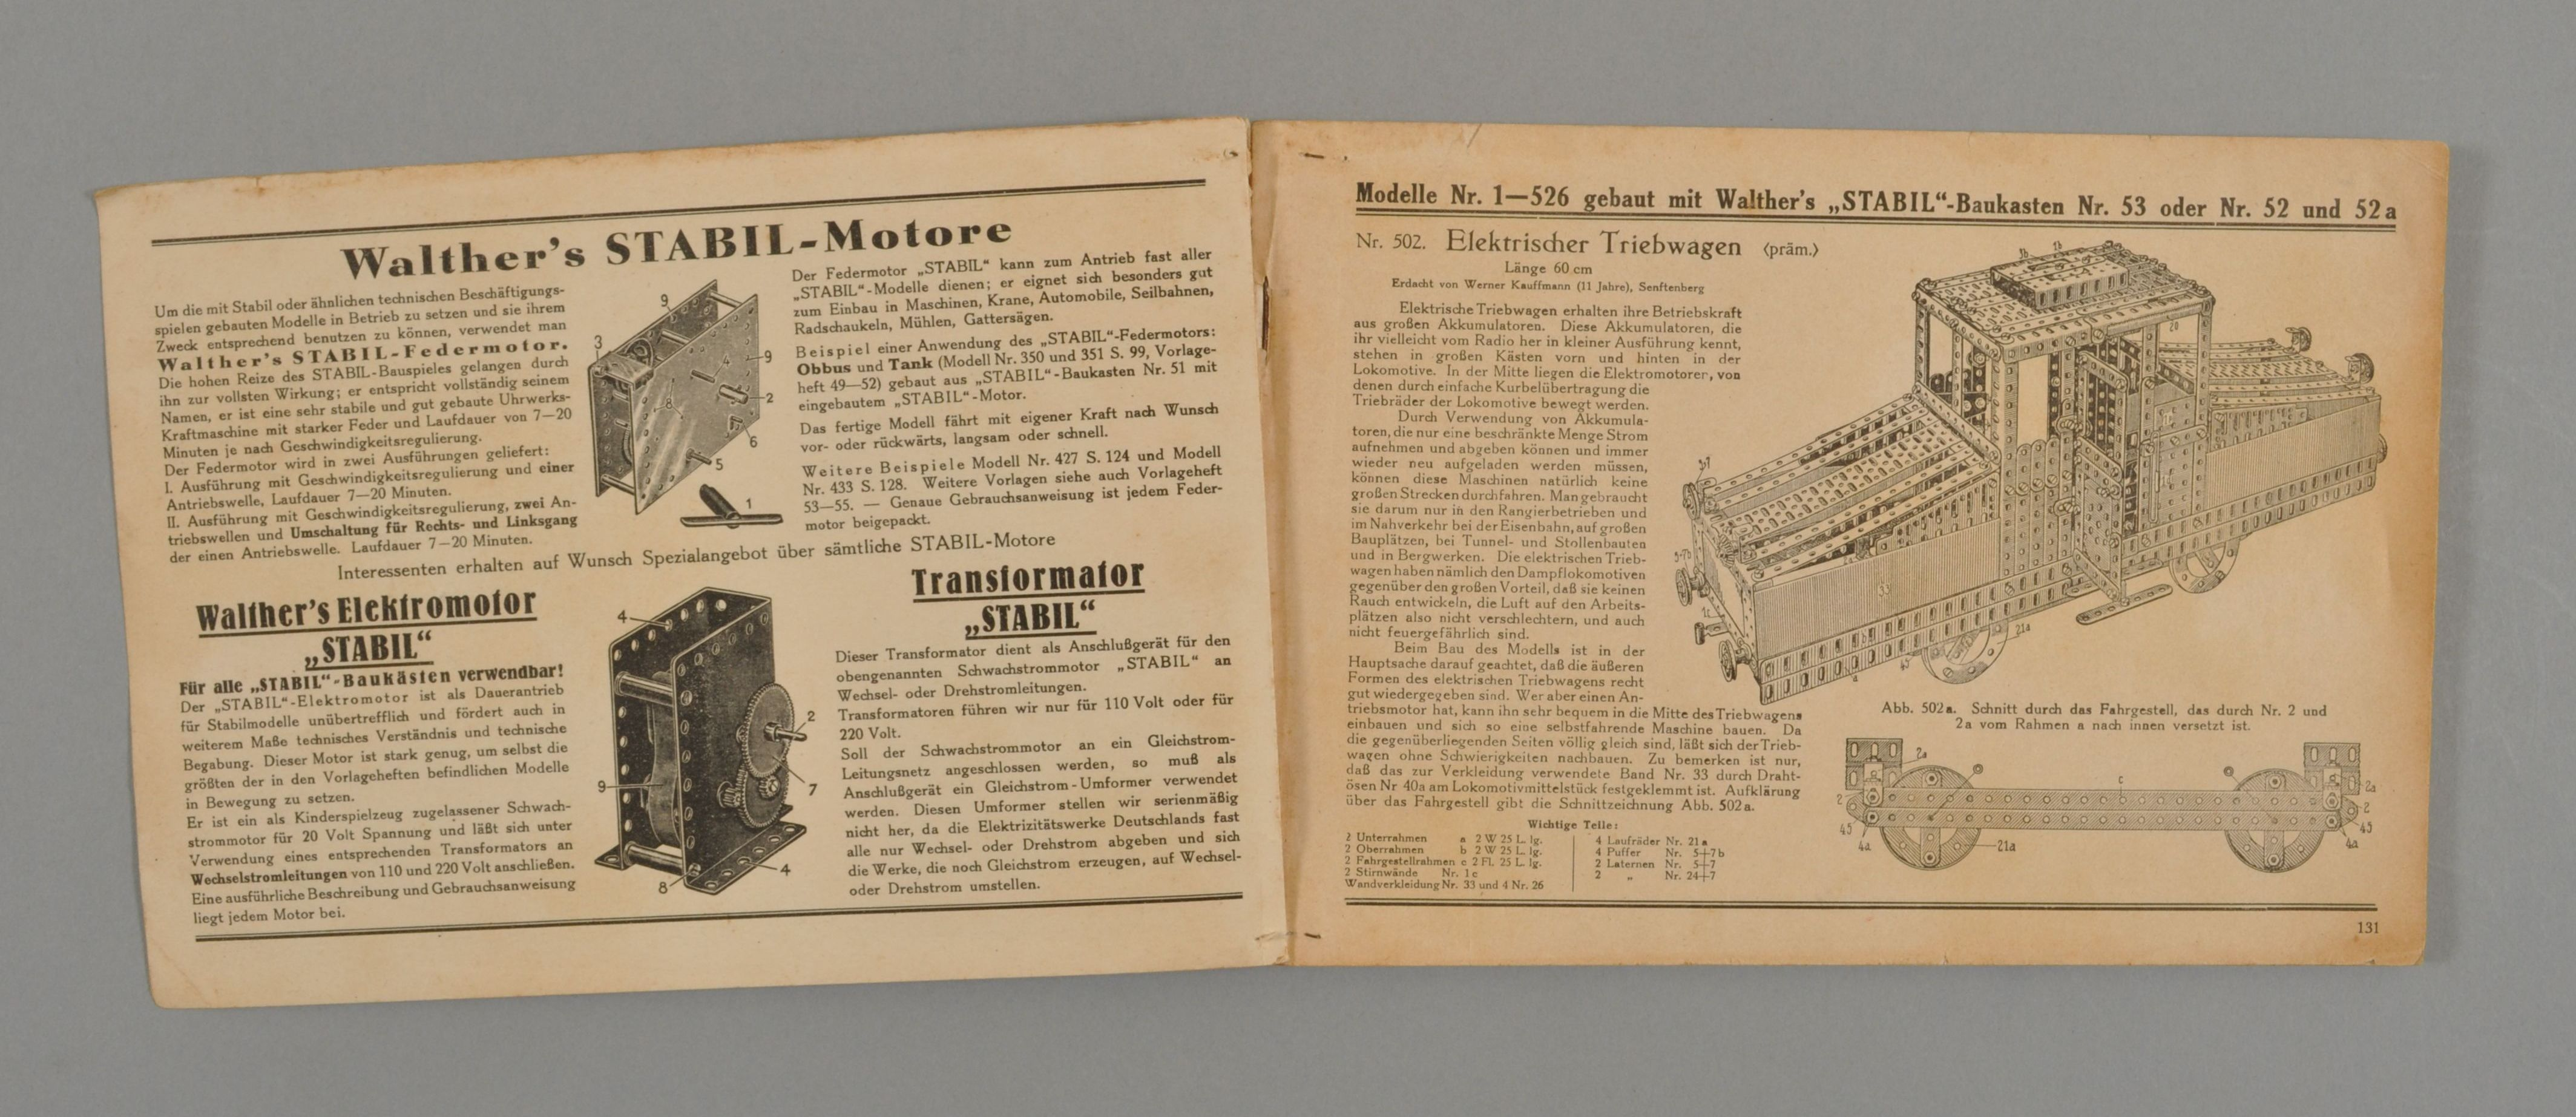 Instruction book for Stabil models - MAAS Collection